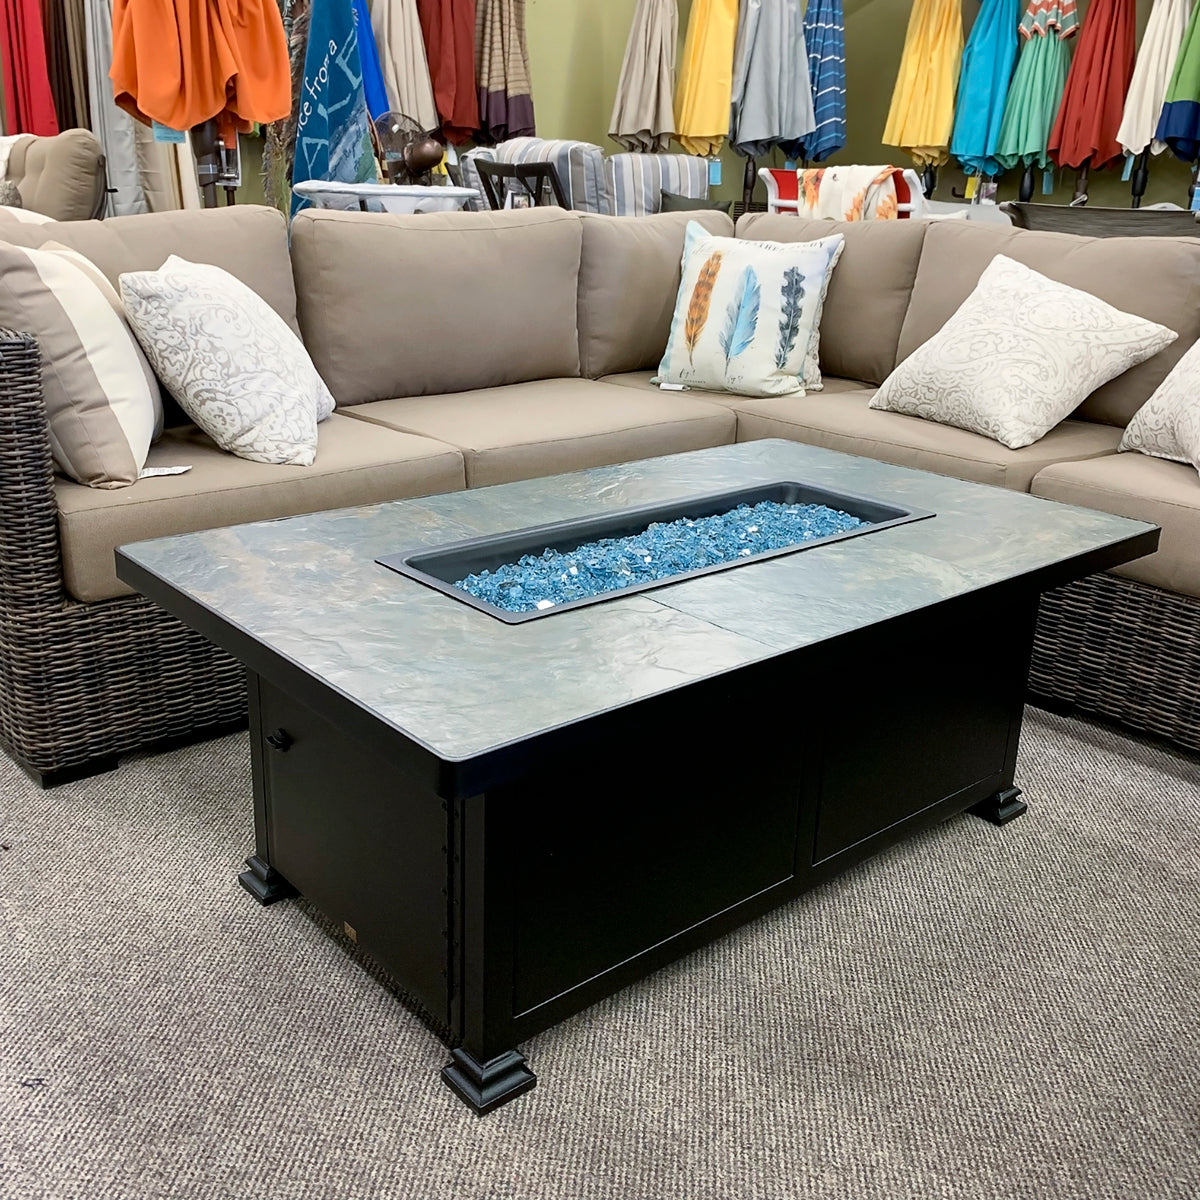 O.W. Lee Azul Slate Rectangle Fire Pit is available at Jacobs Custom Living our Jacobs Custom Living Spokane Valley showroom.